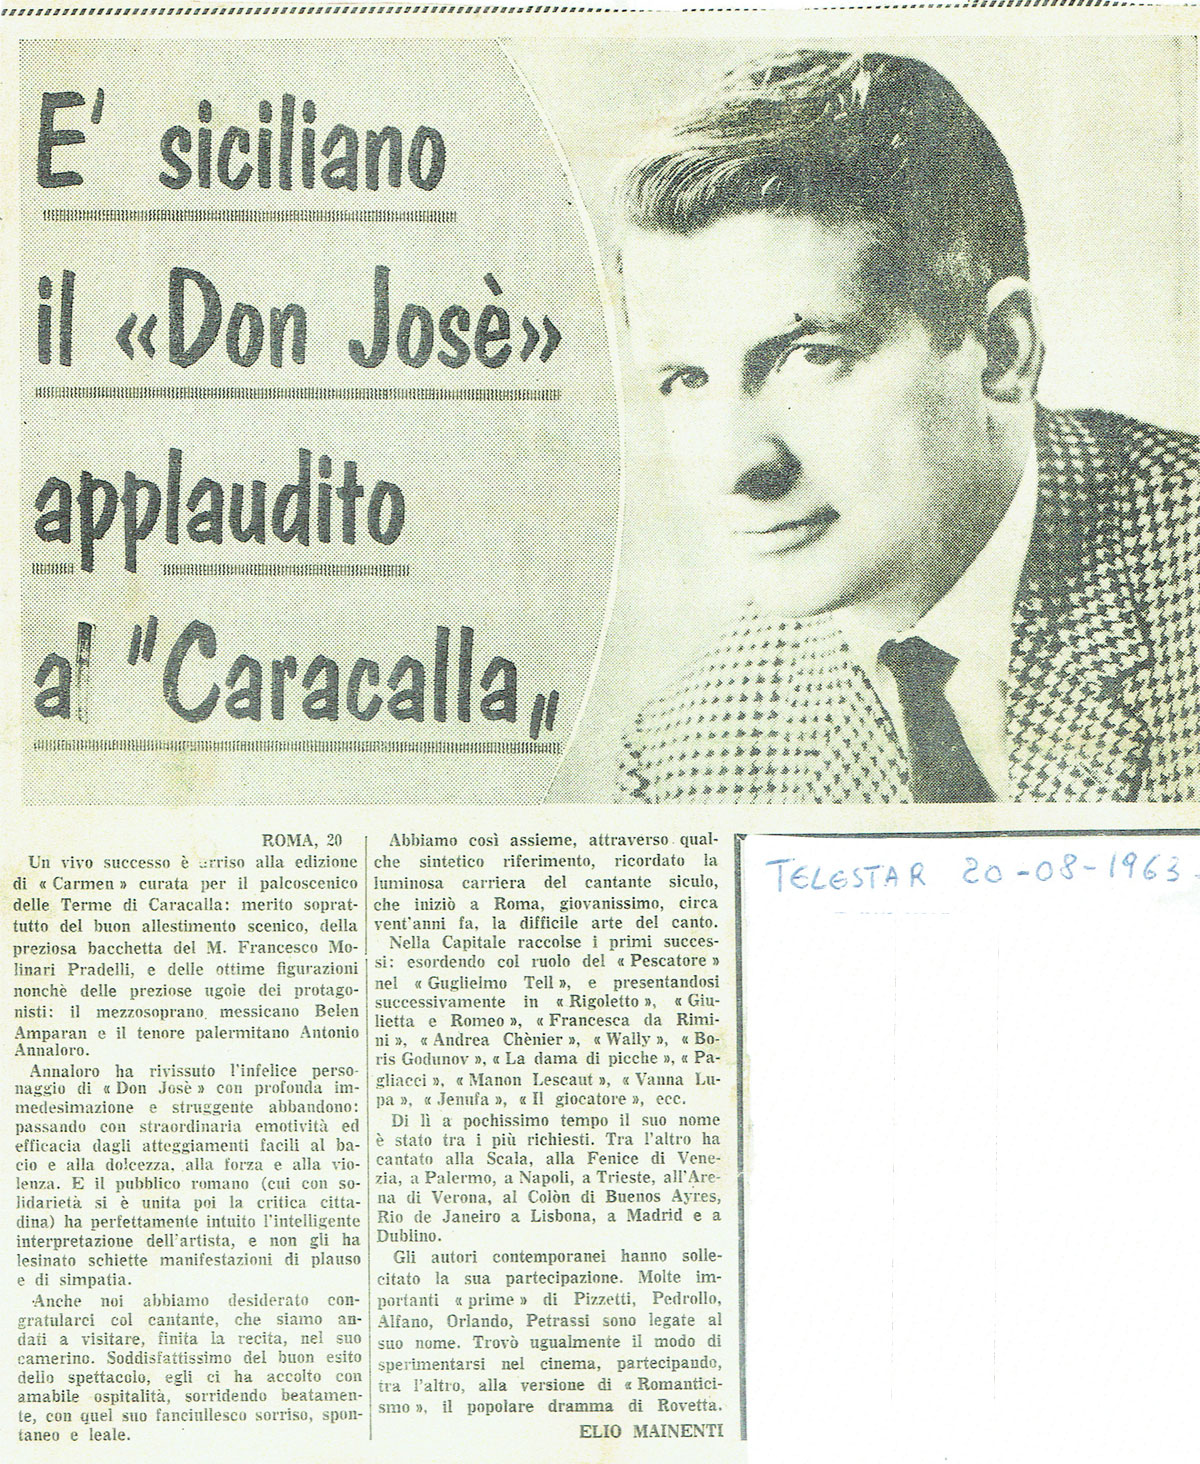 è siciliano il Don José applaudito a Caracalla da un quotidiano del 1963